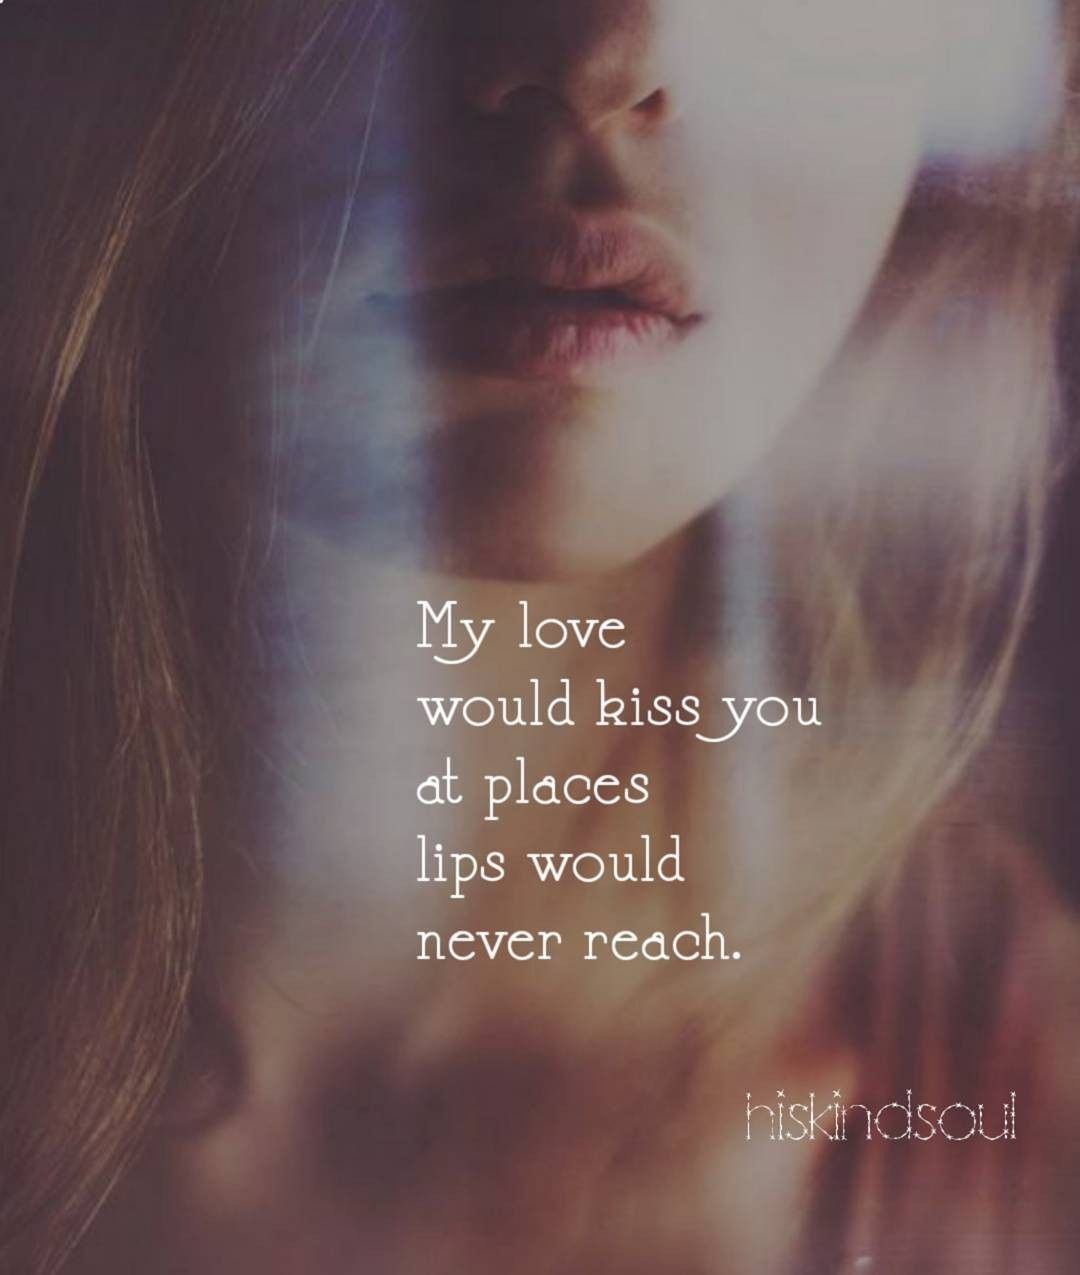 Pin By Avni On Luv Love Quotes For Her True Love Quotes Boyfriend Quotes